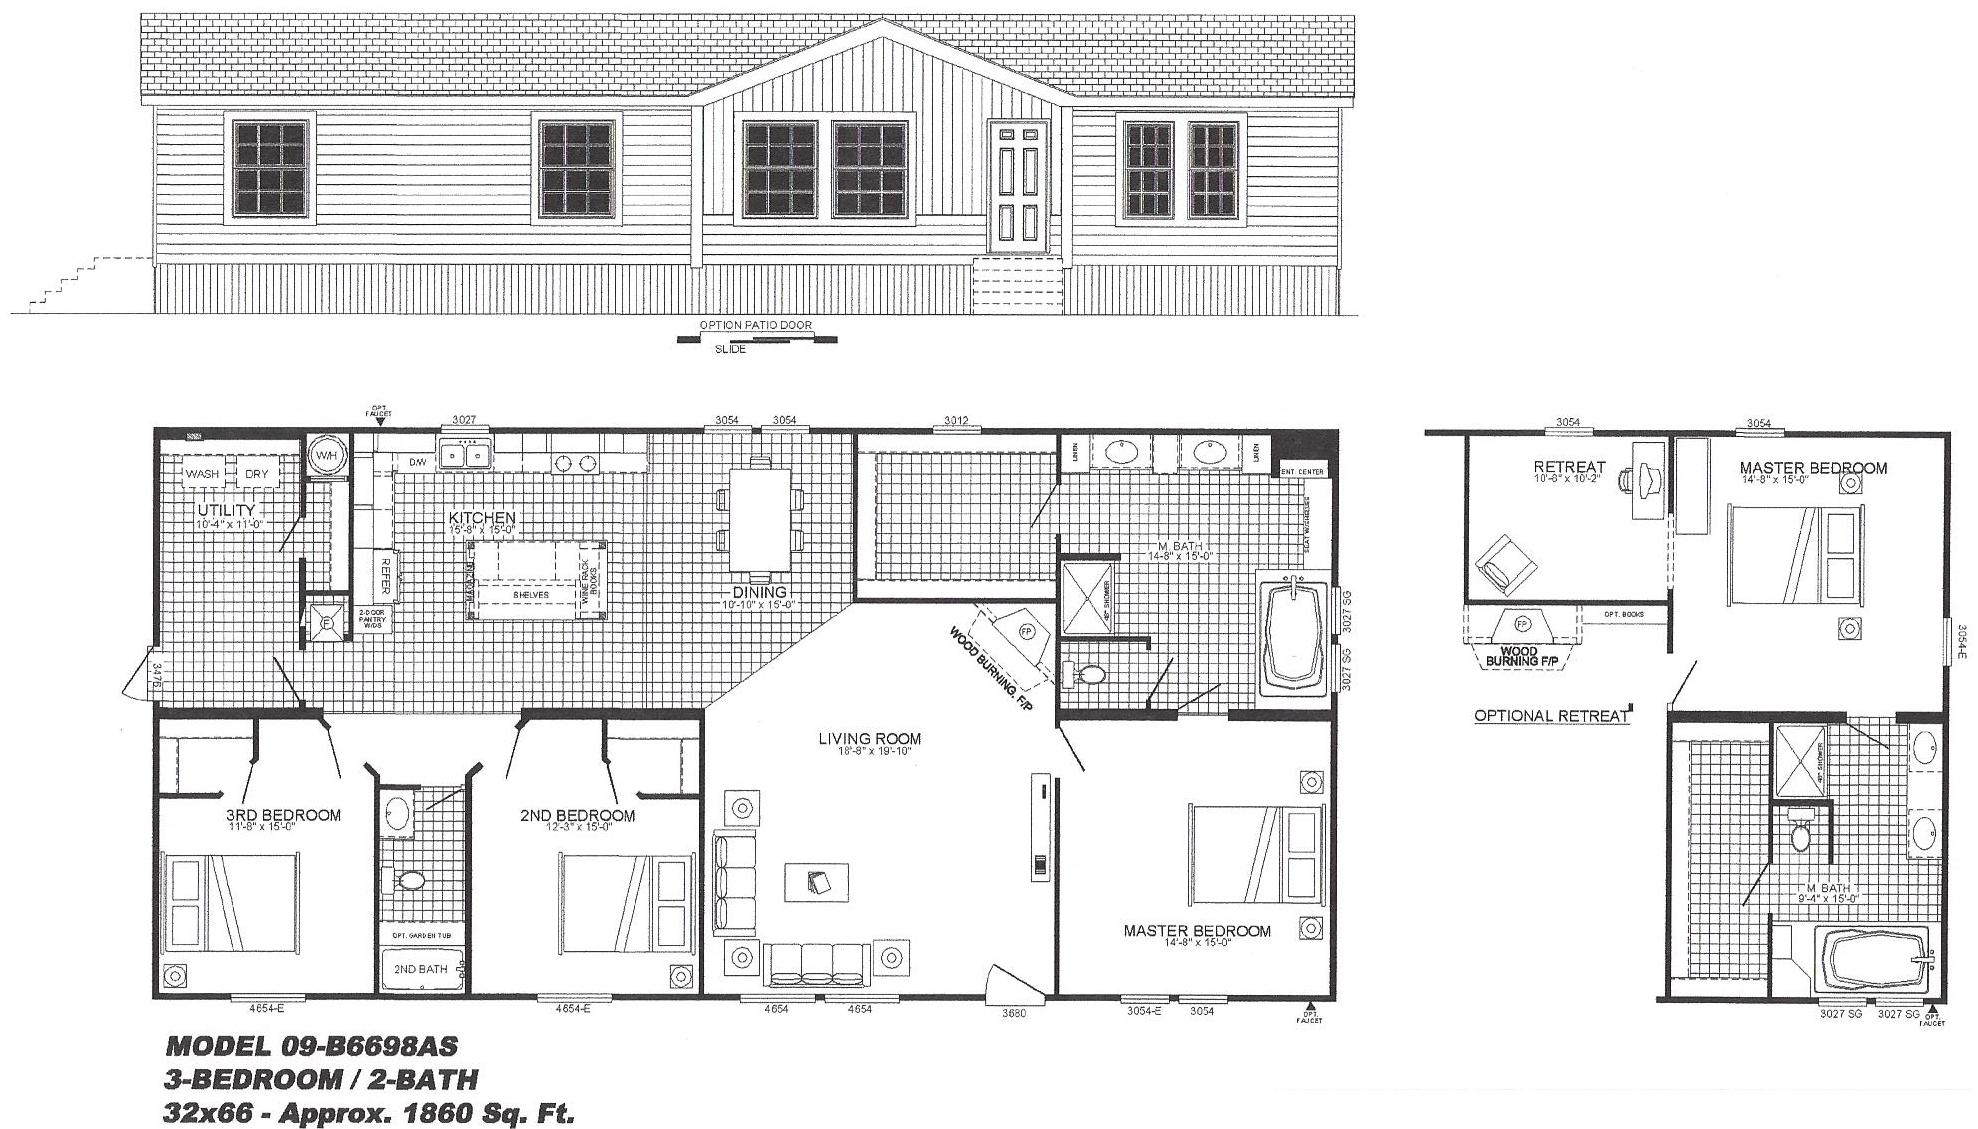 Bedroom 2 Bath Home Floor Plans Likewise 5 Bedroom Mobile Home Floor